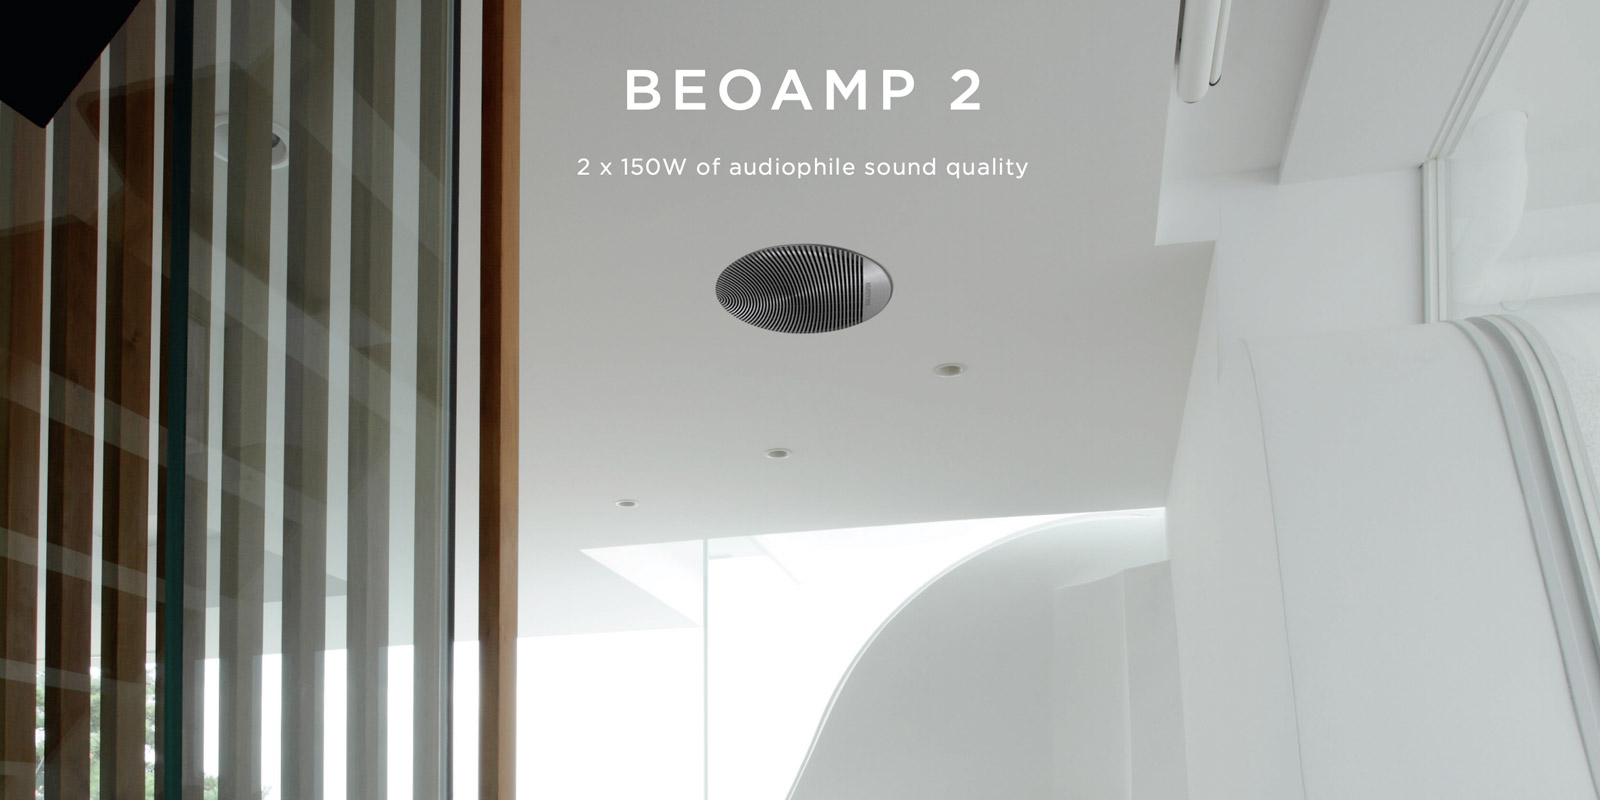 BeoAmp 2 provides an easy installation to power passive speakers from Bang & Olufsen.